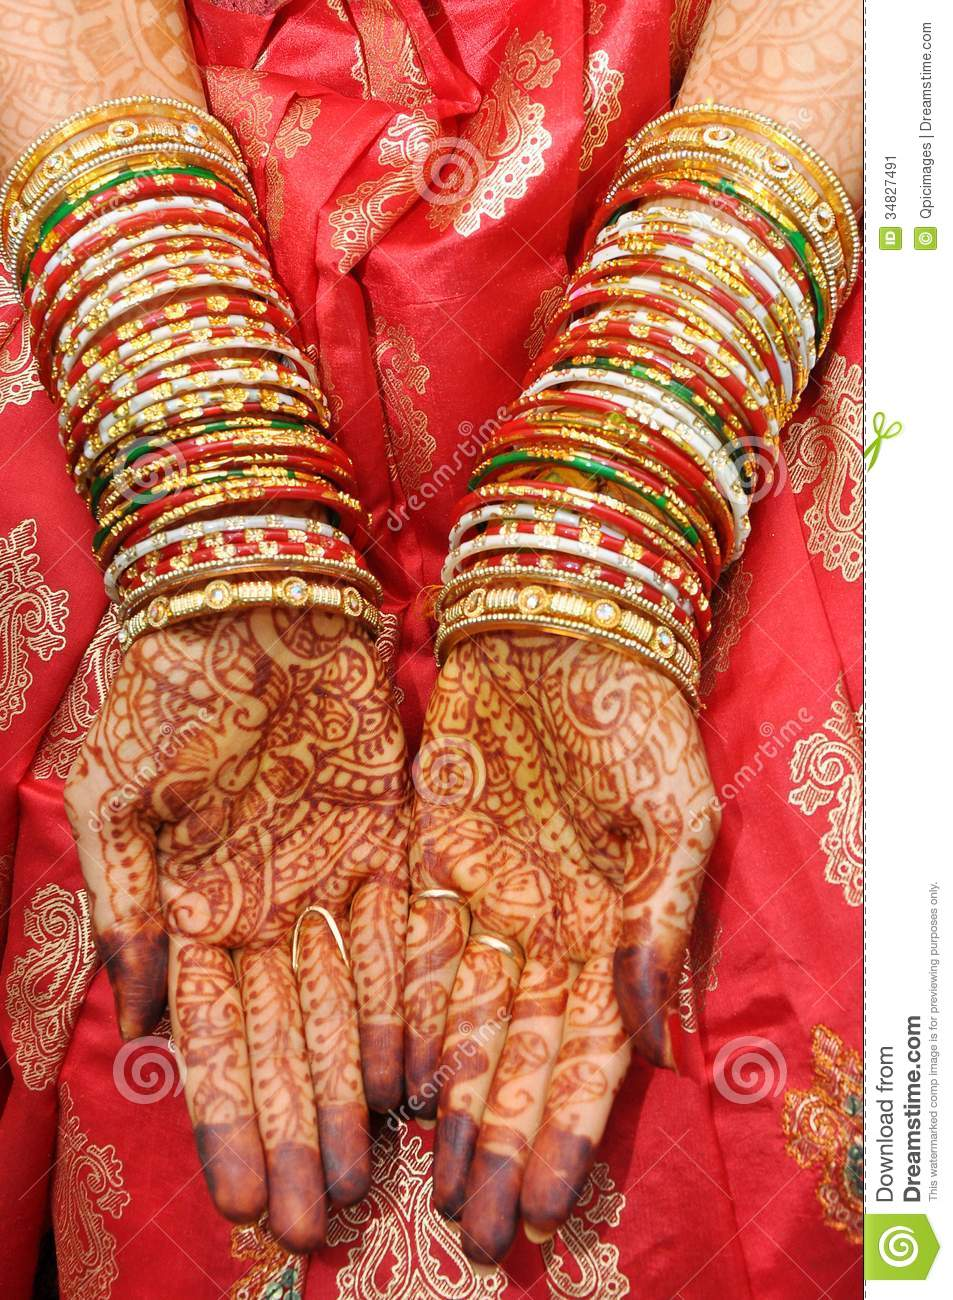 Beautiful Hands Of An India Bride Stock Image - Image of embellish ...